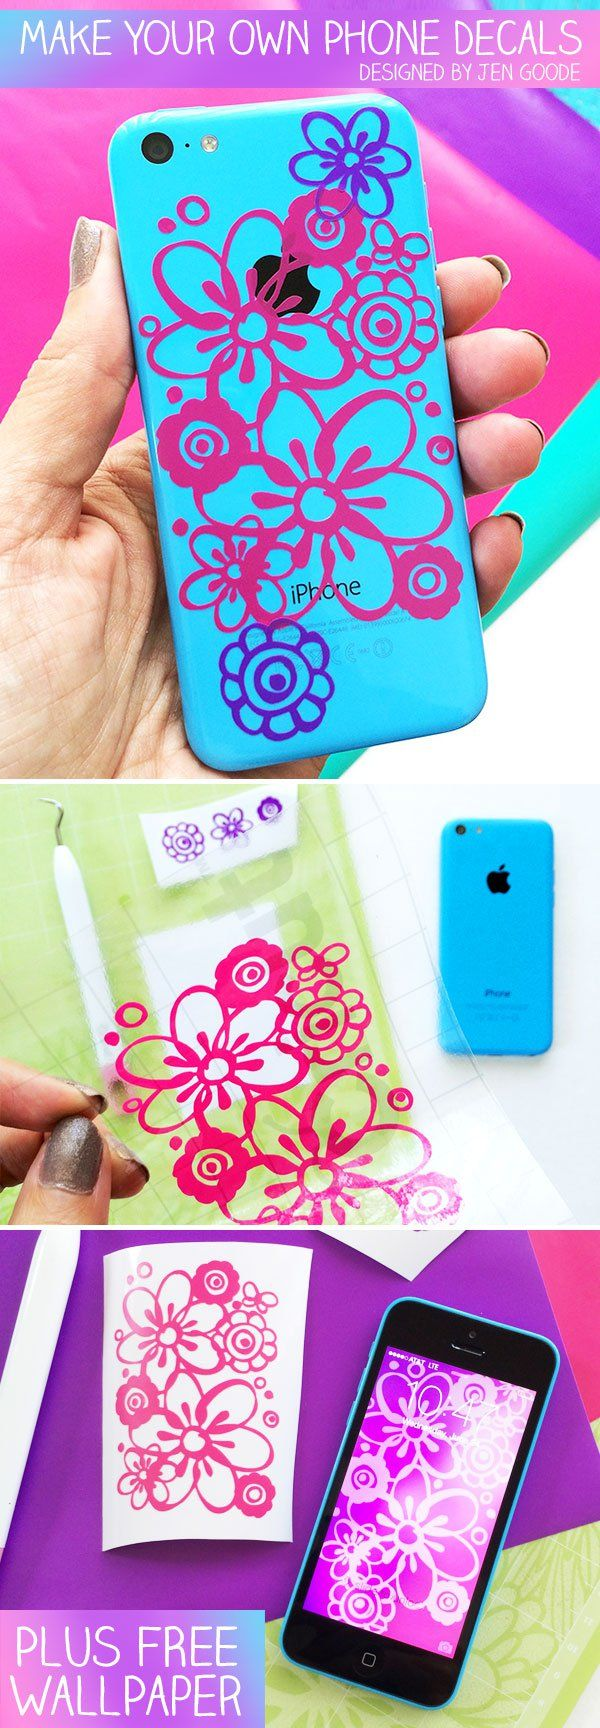 Unique Iphone Decal Ideas On Pinterest Iphone Apple - How to create vinyl decals suggestions